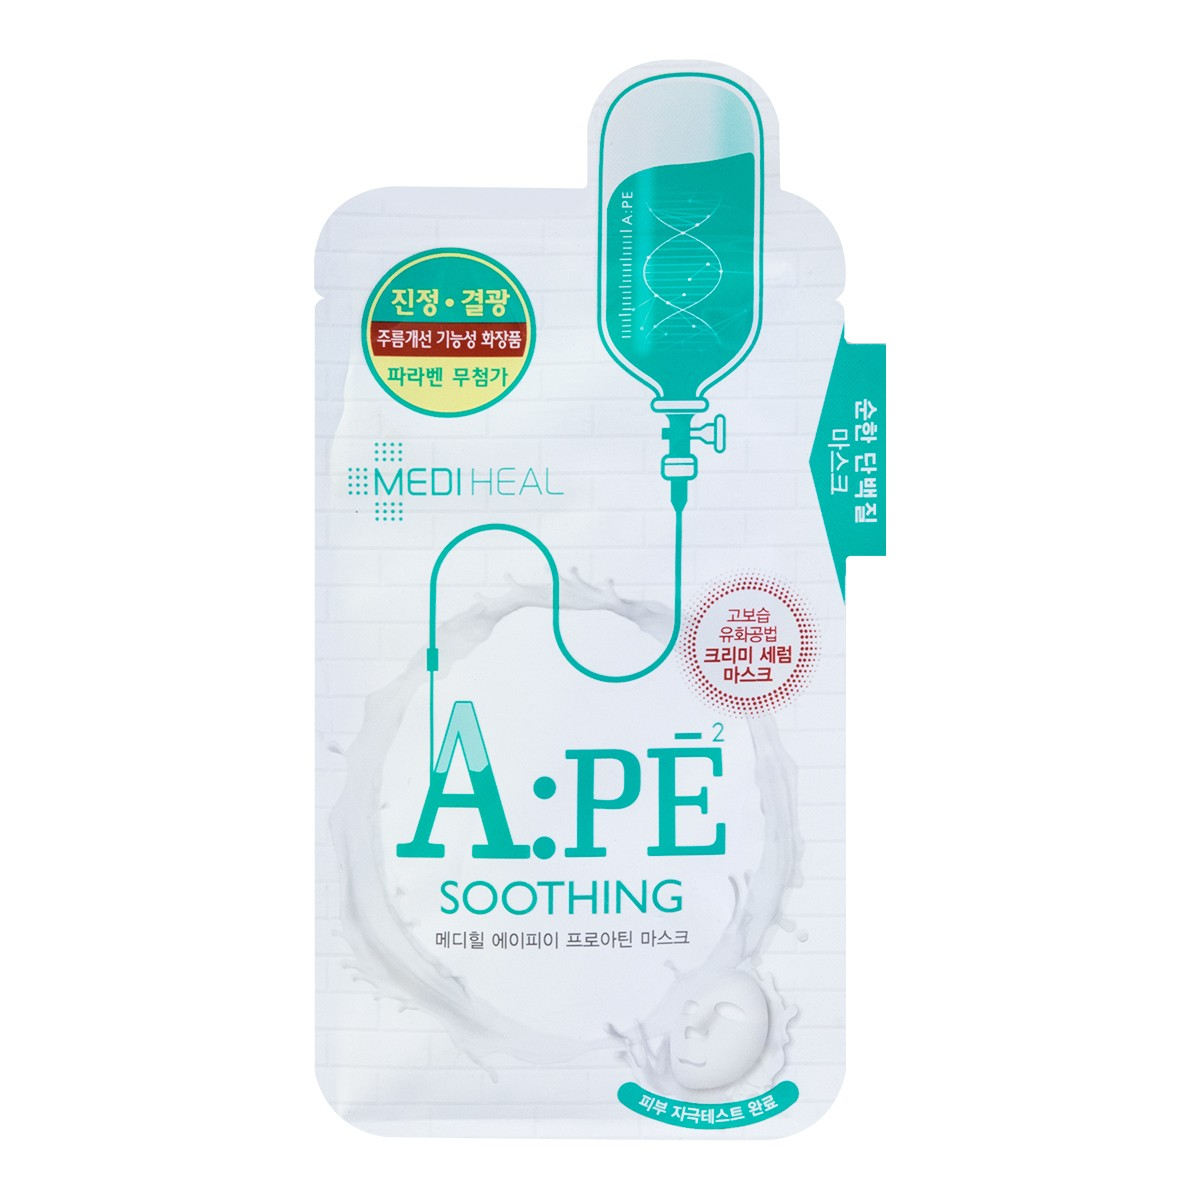 MEDIHEAL A:PE Soothing Face Mask 1sheet